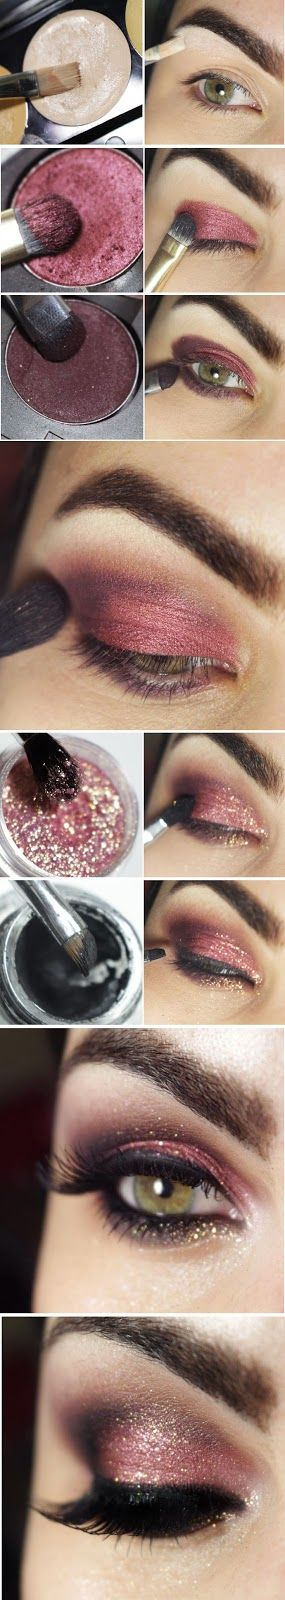 Pink and Wine Makeup Tutorials / Best LoLus Makeup Fashion ...